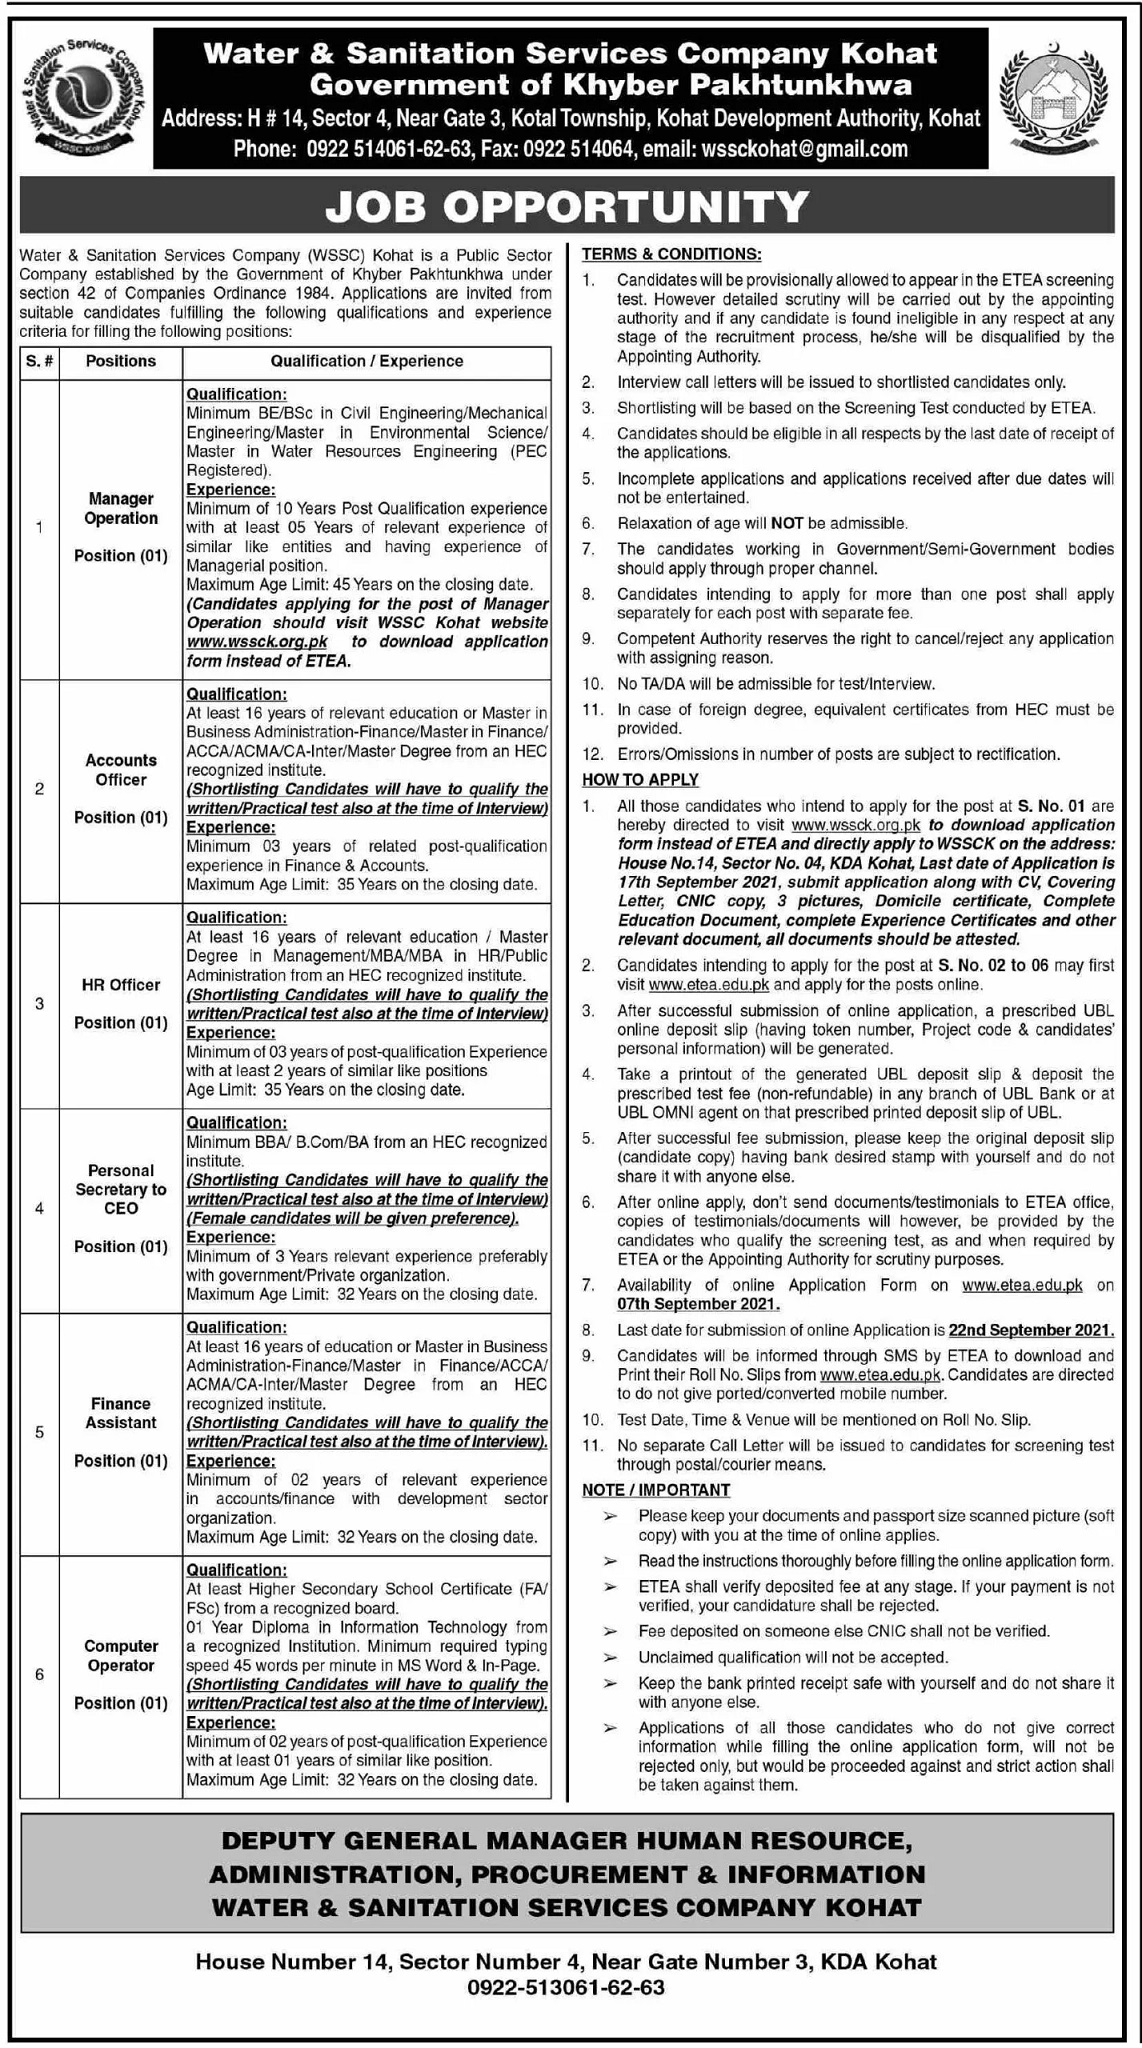 Local Govt KPK Jobs Today At WSSC Kohat Water and Sanitation Services